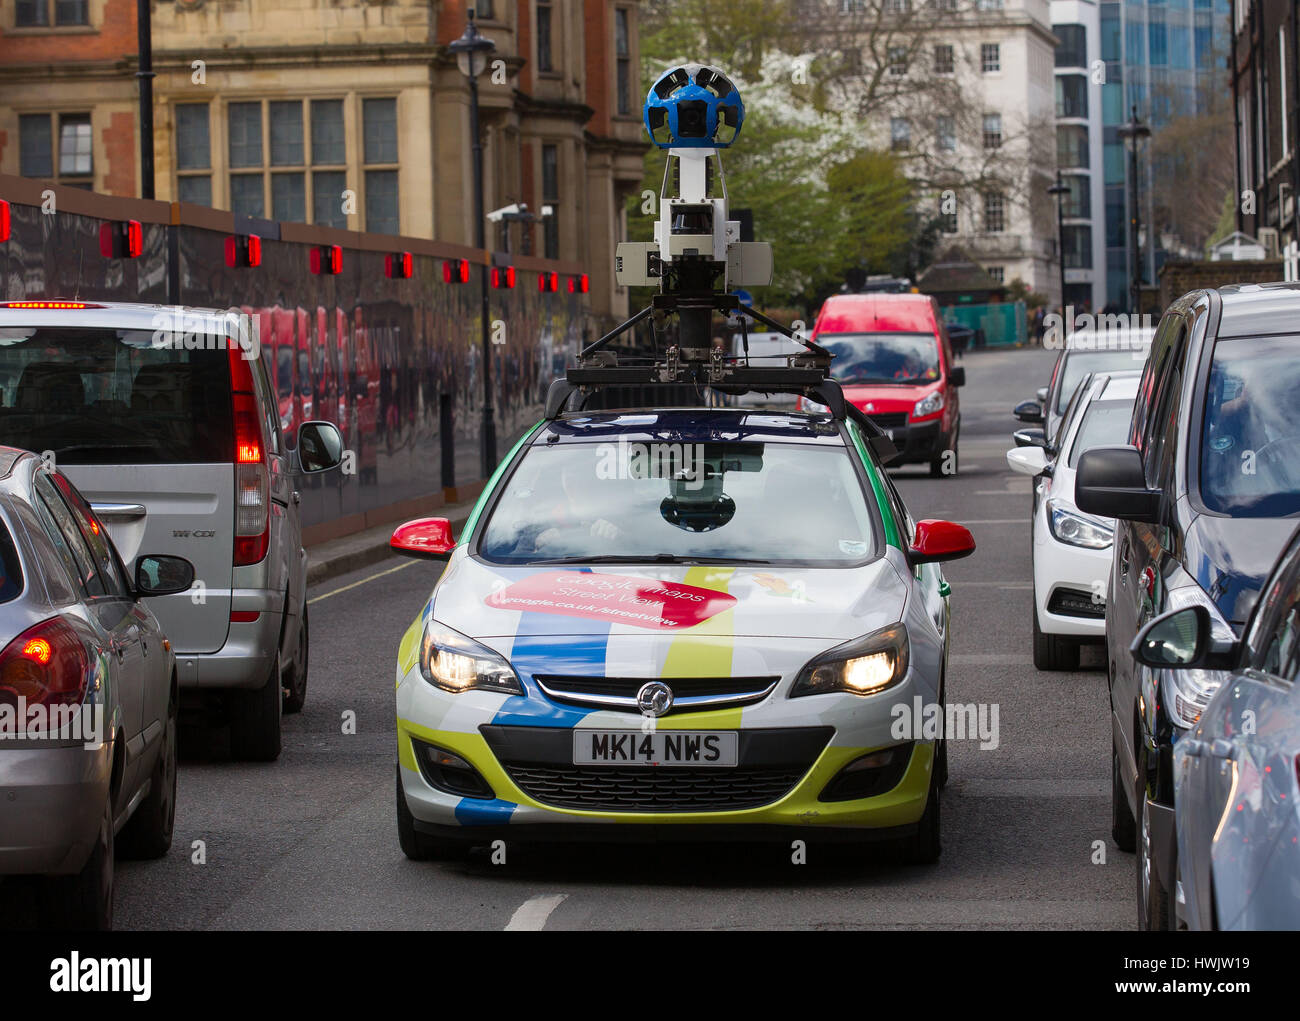 google street view d 39 une cam ra mont e sur le toit d 39 une vauxhall astra voiture capture les rues. Black Bedroom Furniture Sets. Home Design Ideas